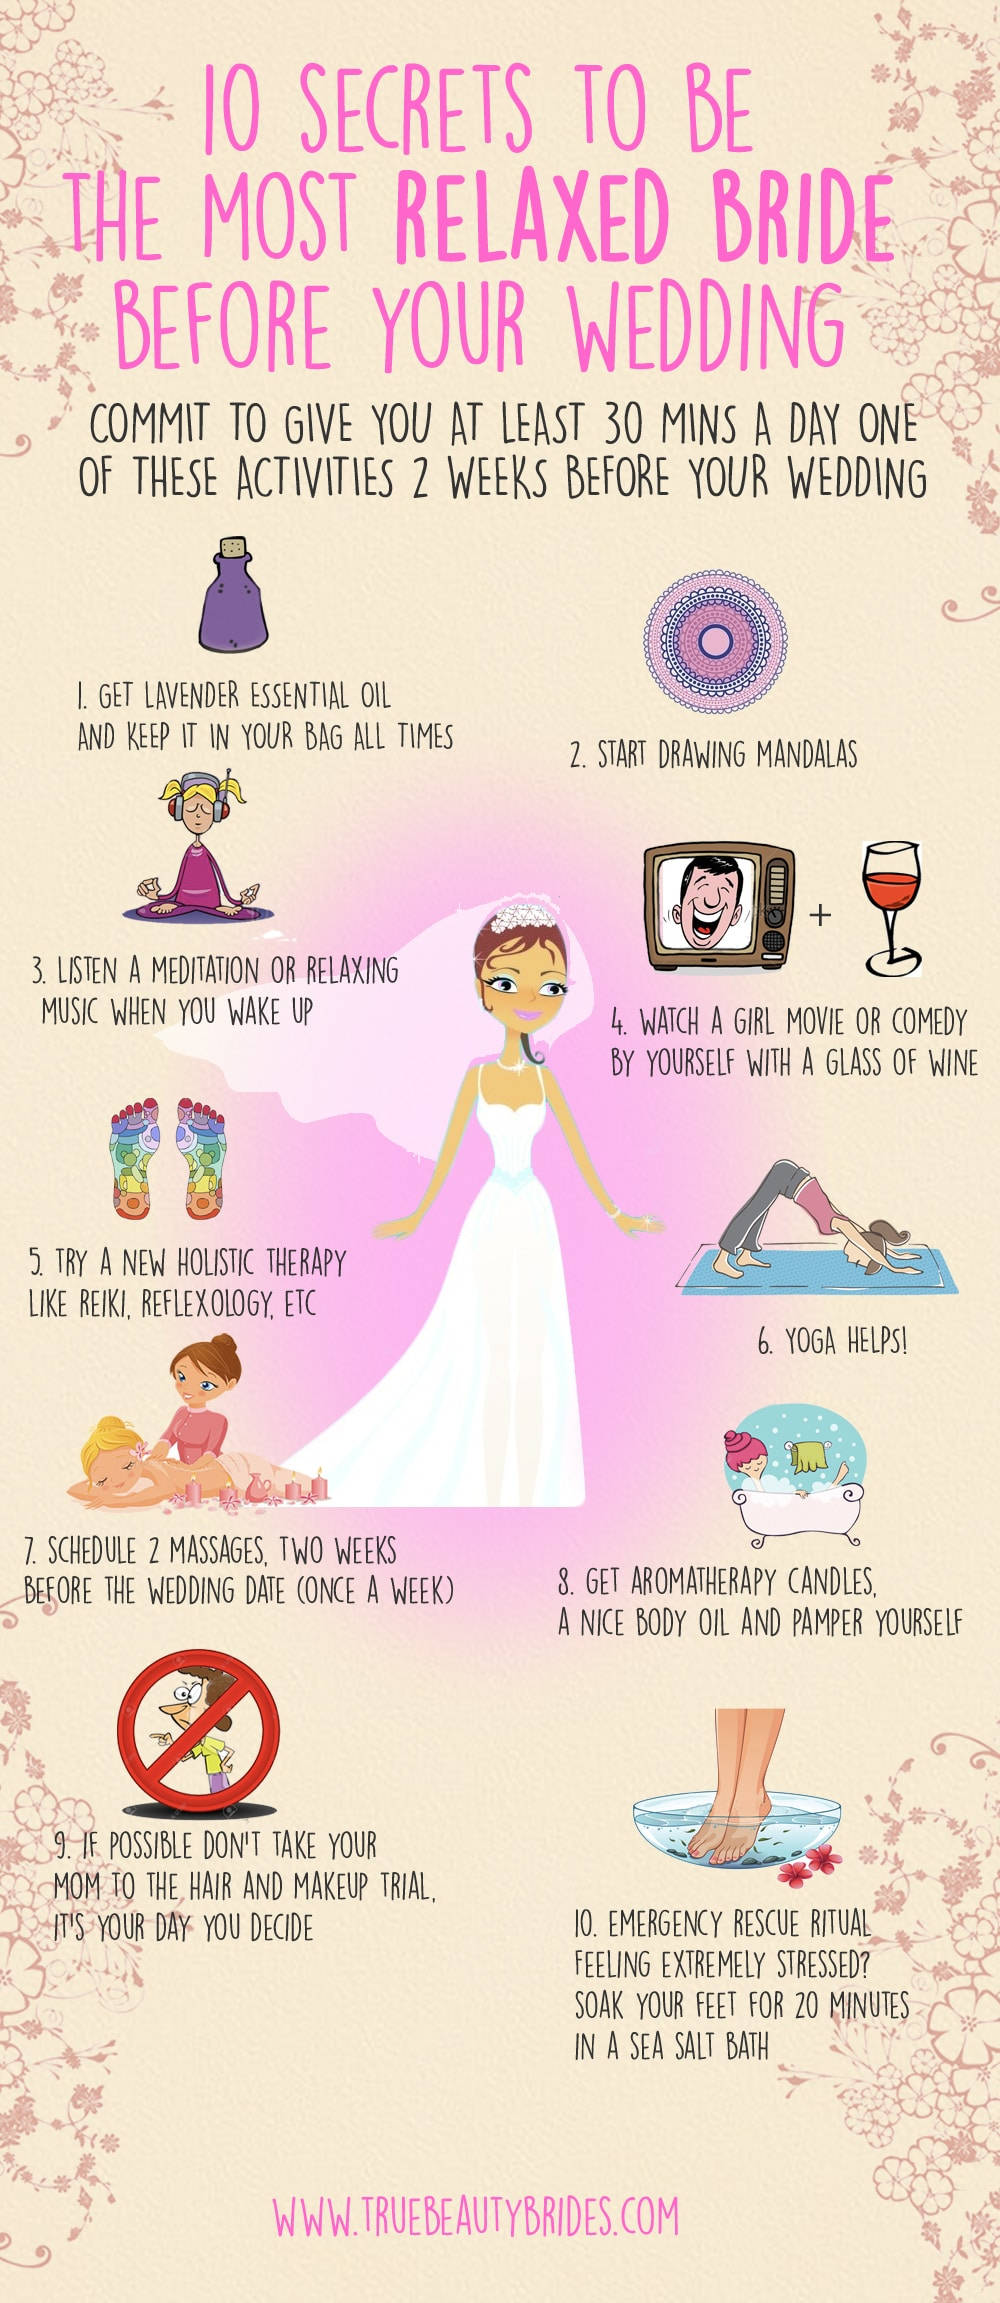 Secrets to be the most relaxed bride before your wedding